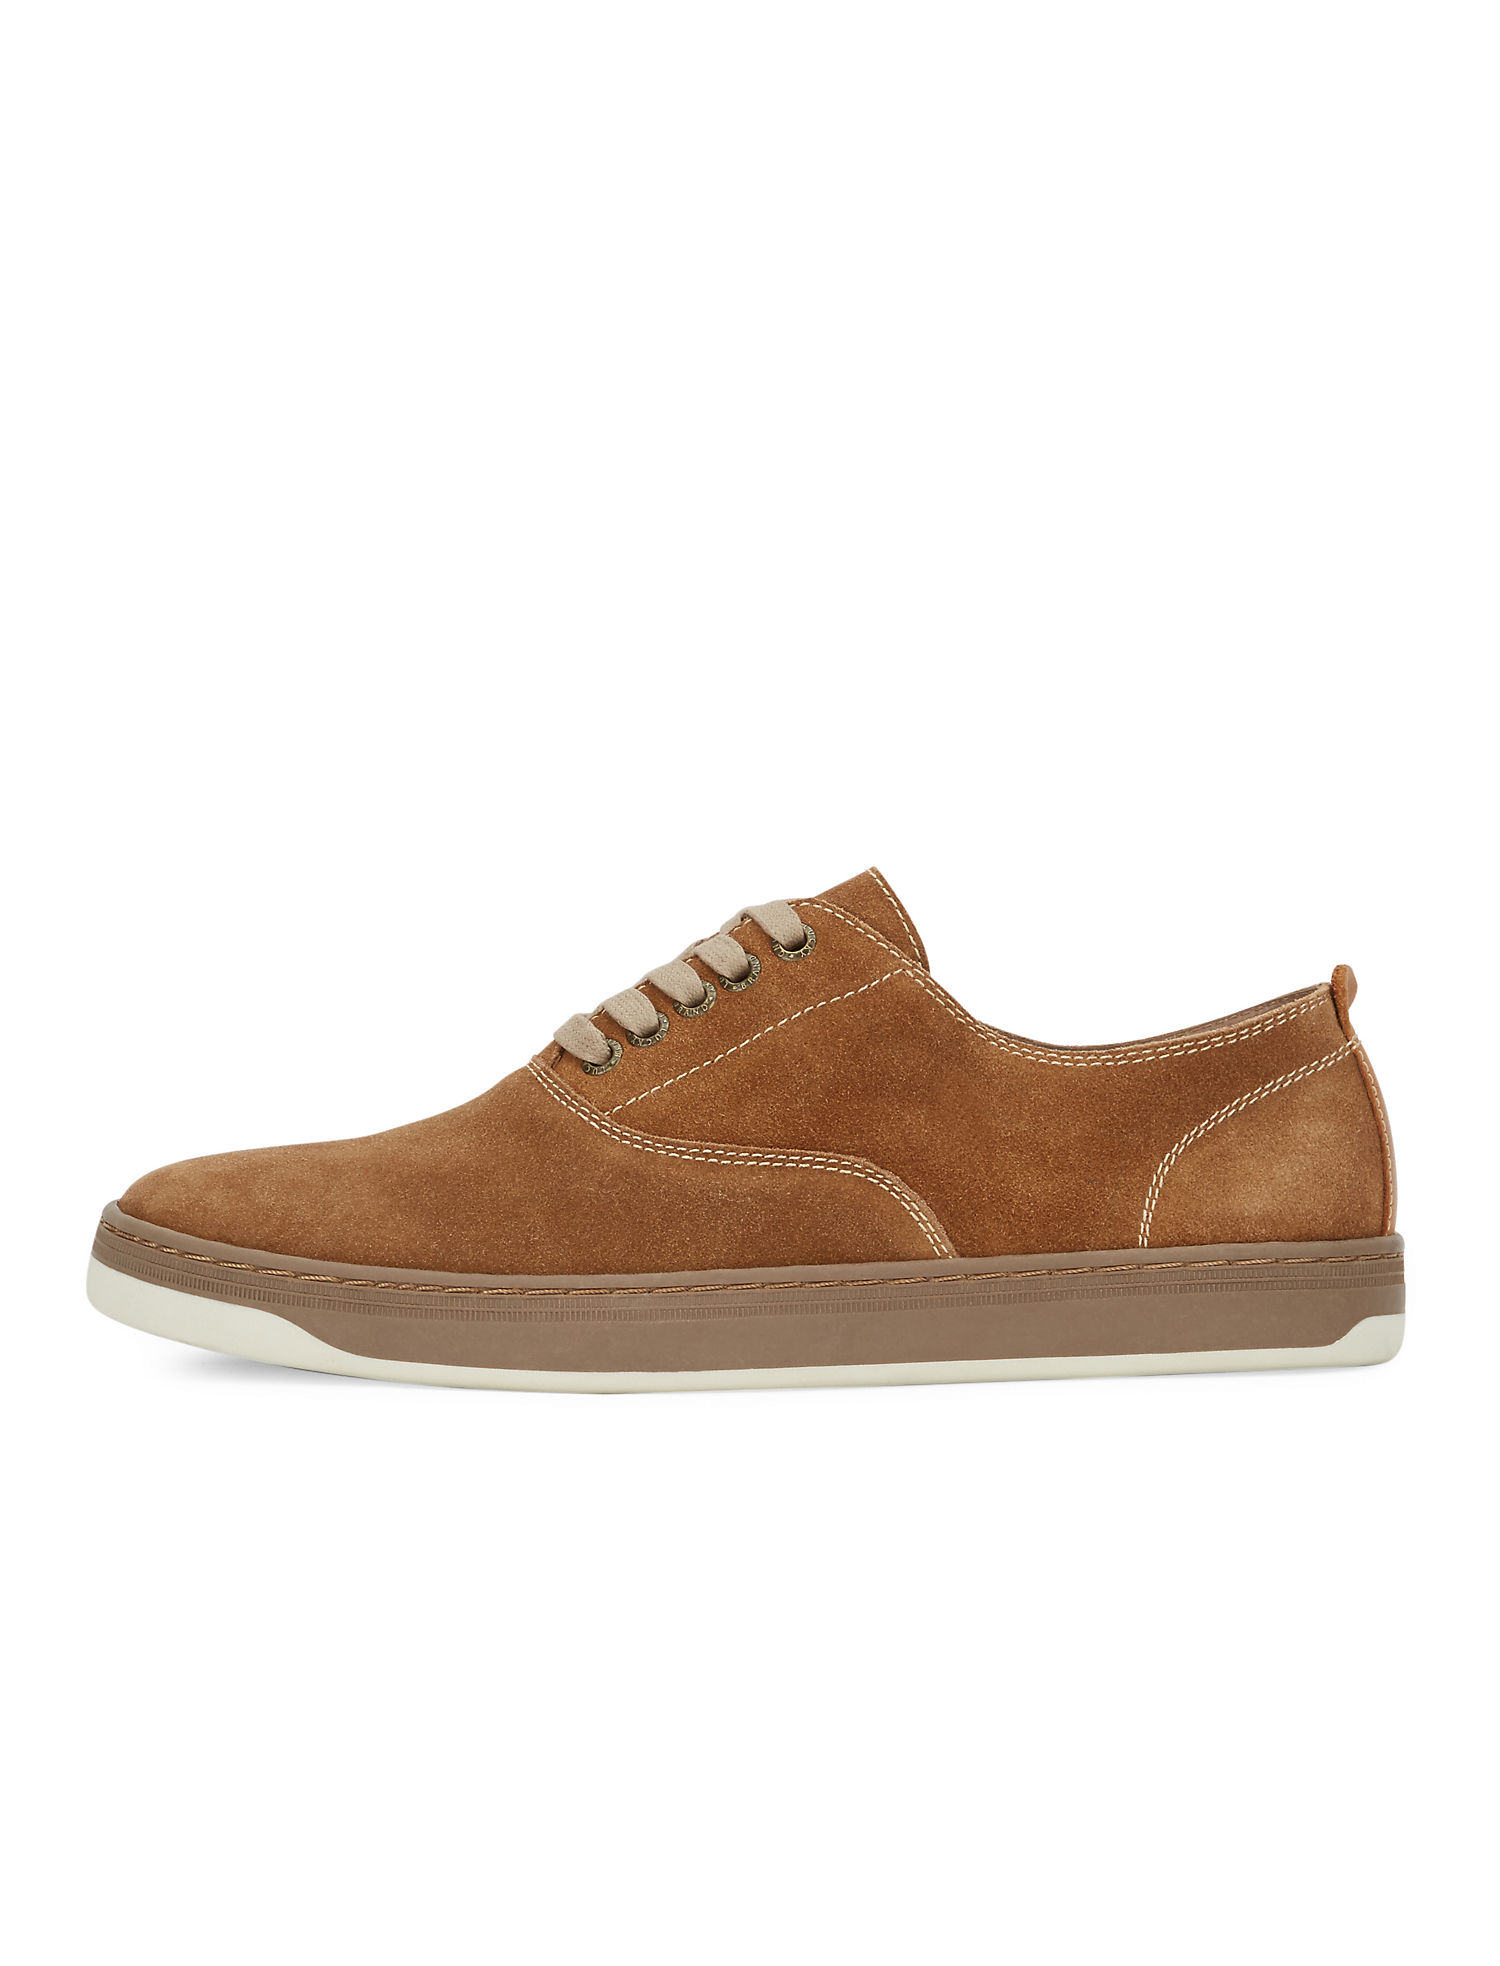 Cheap Sale Visa Payment Lucky Brand Parkes Buy Cheap Fashion Style fBbTWbST